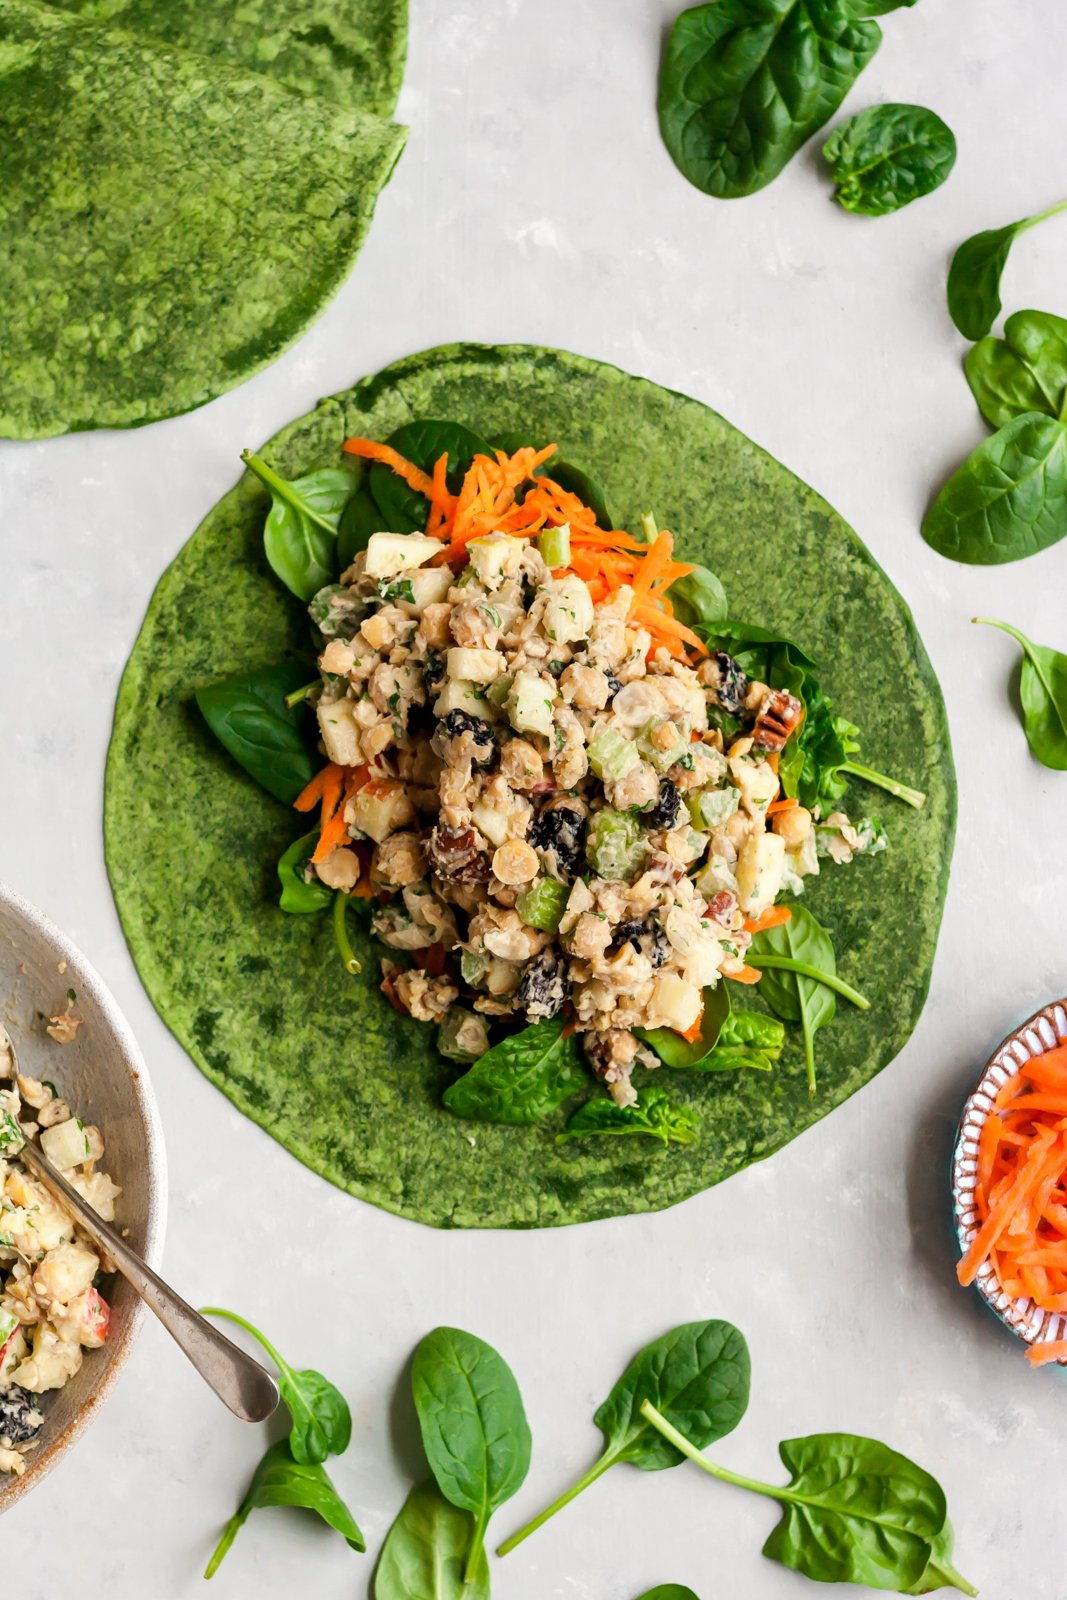 Vegan Pecan Apple Chickpea Salad Wraps with a creamy maple dijon tahini dressing. Takes 15 minutes to make and no cooking involved, making this a great recipe for healthy lunches and parties! Enjoy the salad in your favorite wrap, on toast, as-is or even in lettuce cups!